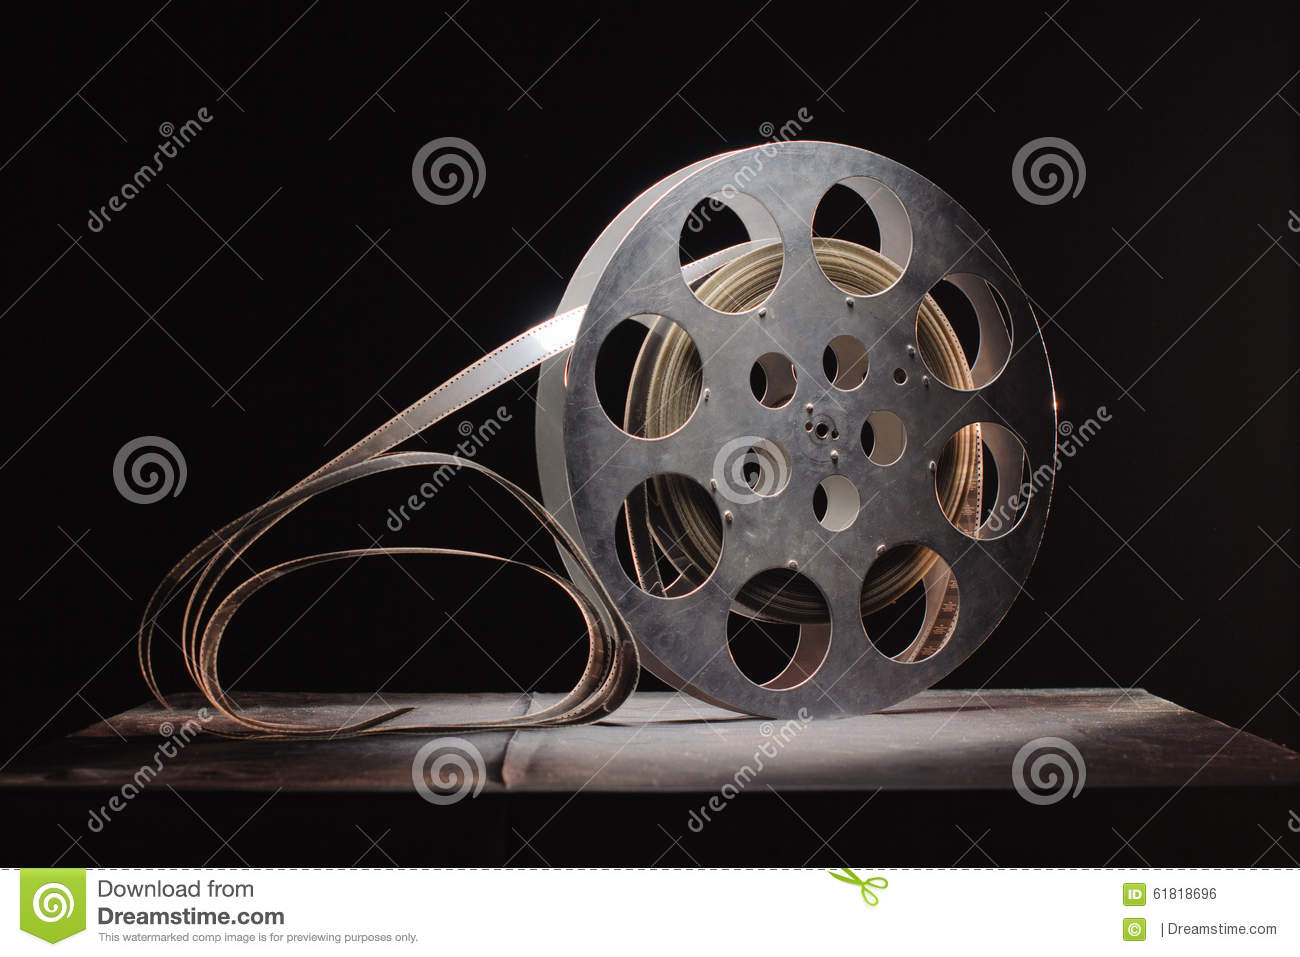 Reel Of Film Stock Illustration - Image: 61818696